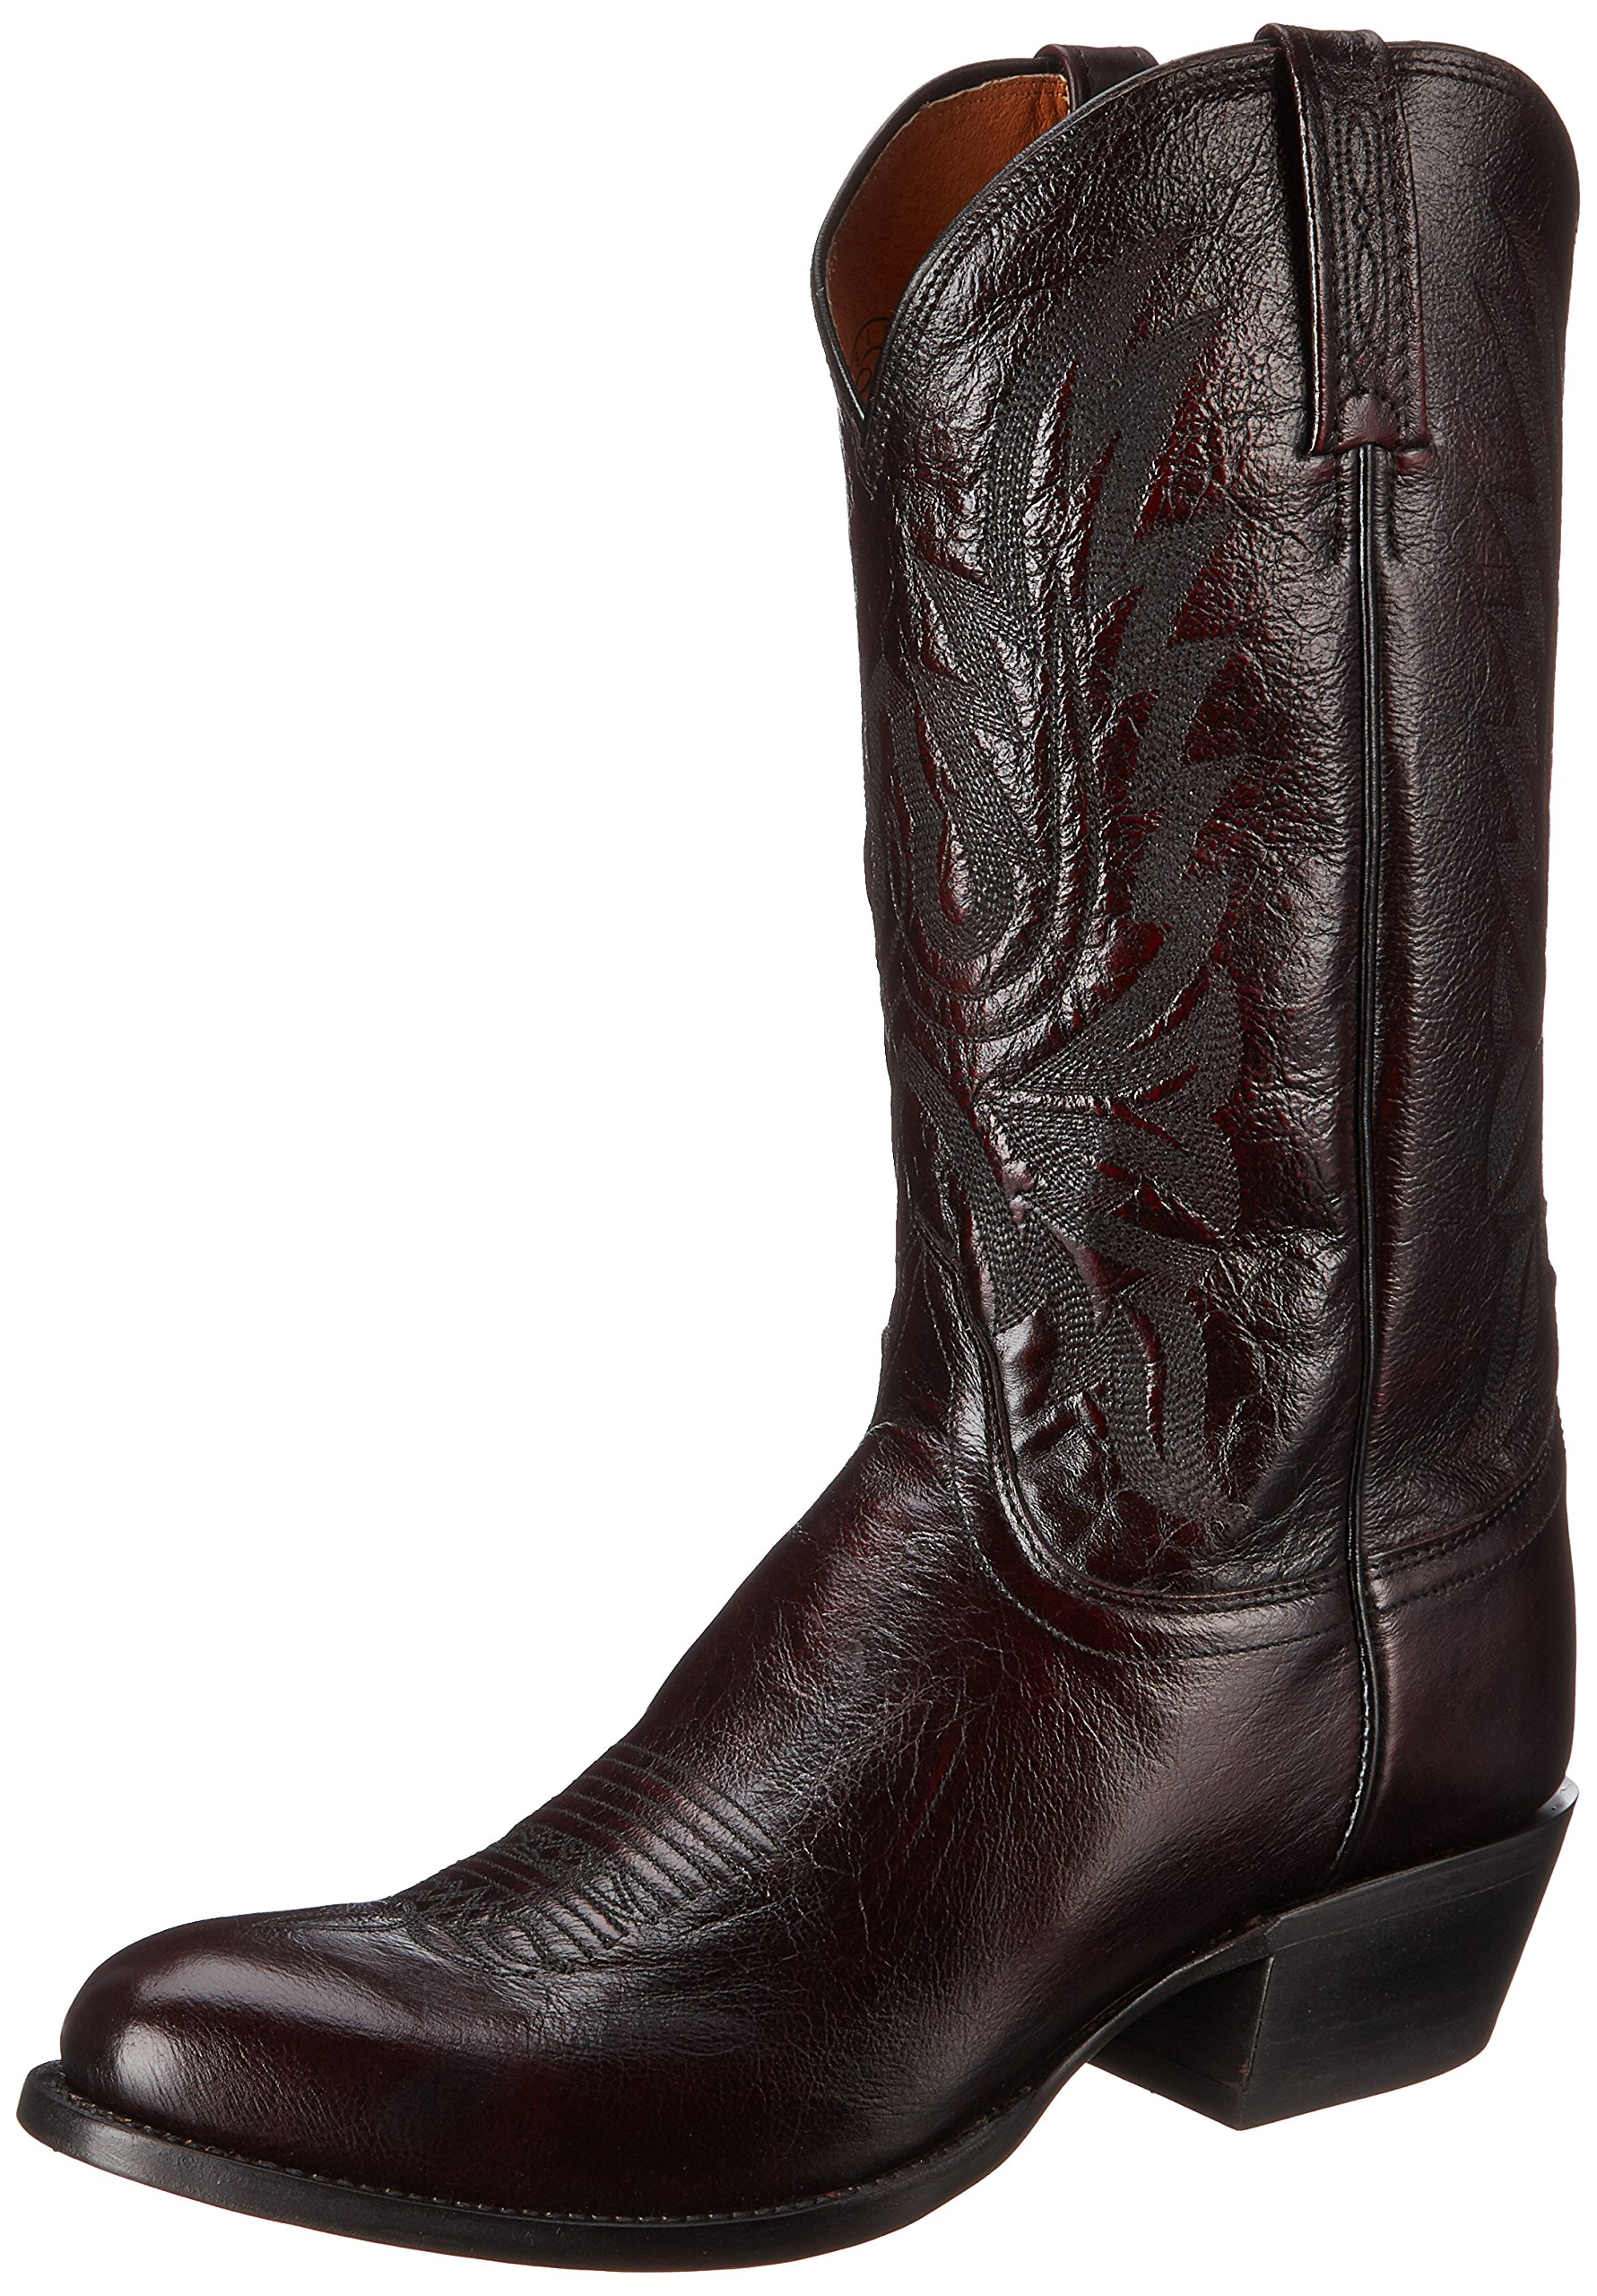 Lucchese Classics Men's Carson-bc Lonestar Calf Cowboy Riding Boot, Black Cherry, 10.5 D US by Lucchese Bootmaker